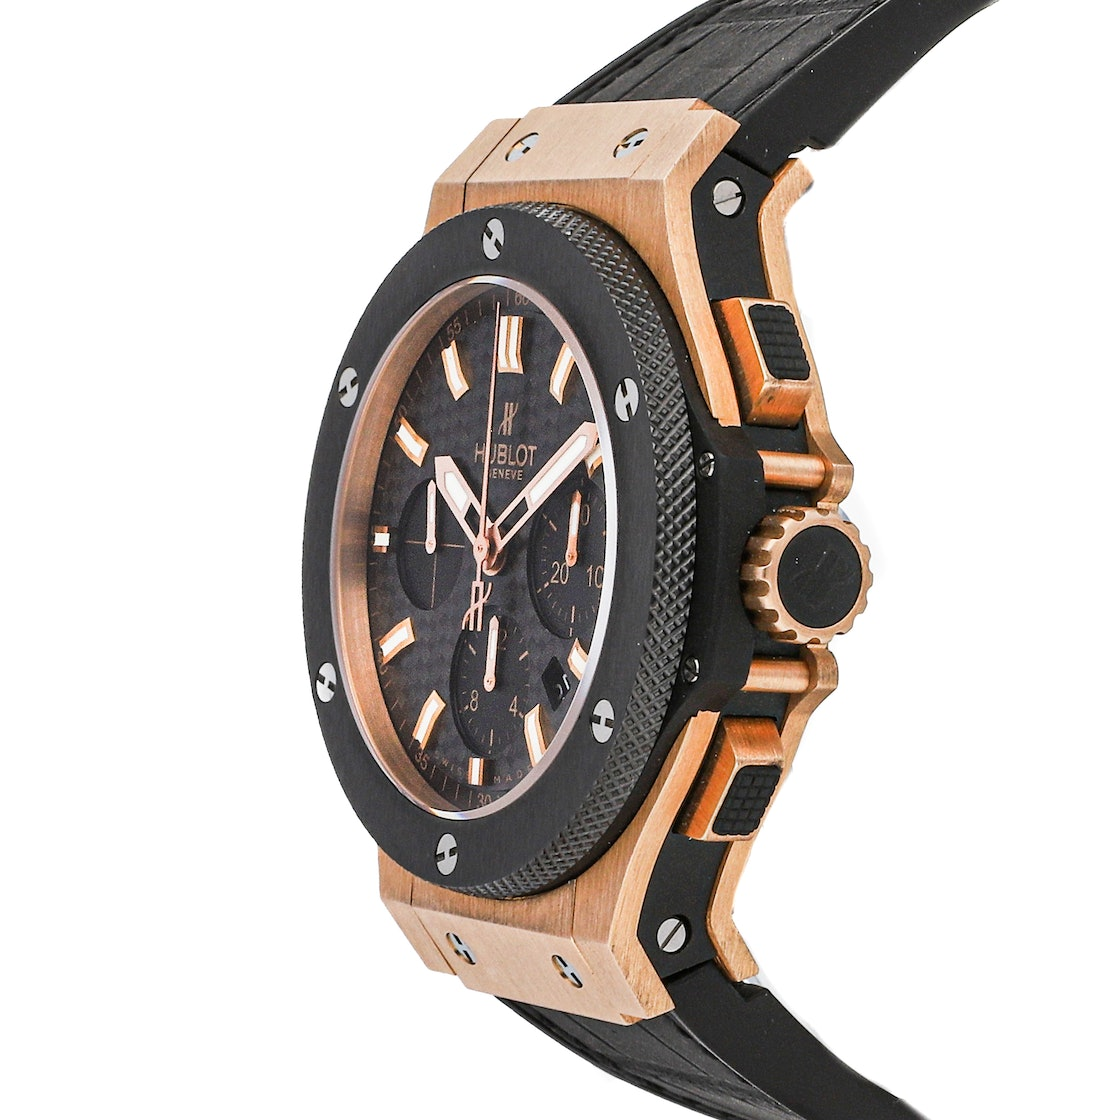 Hublot Big Bang Chronograph 301.PM.1780.RX